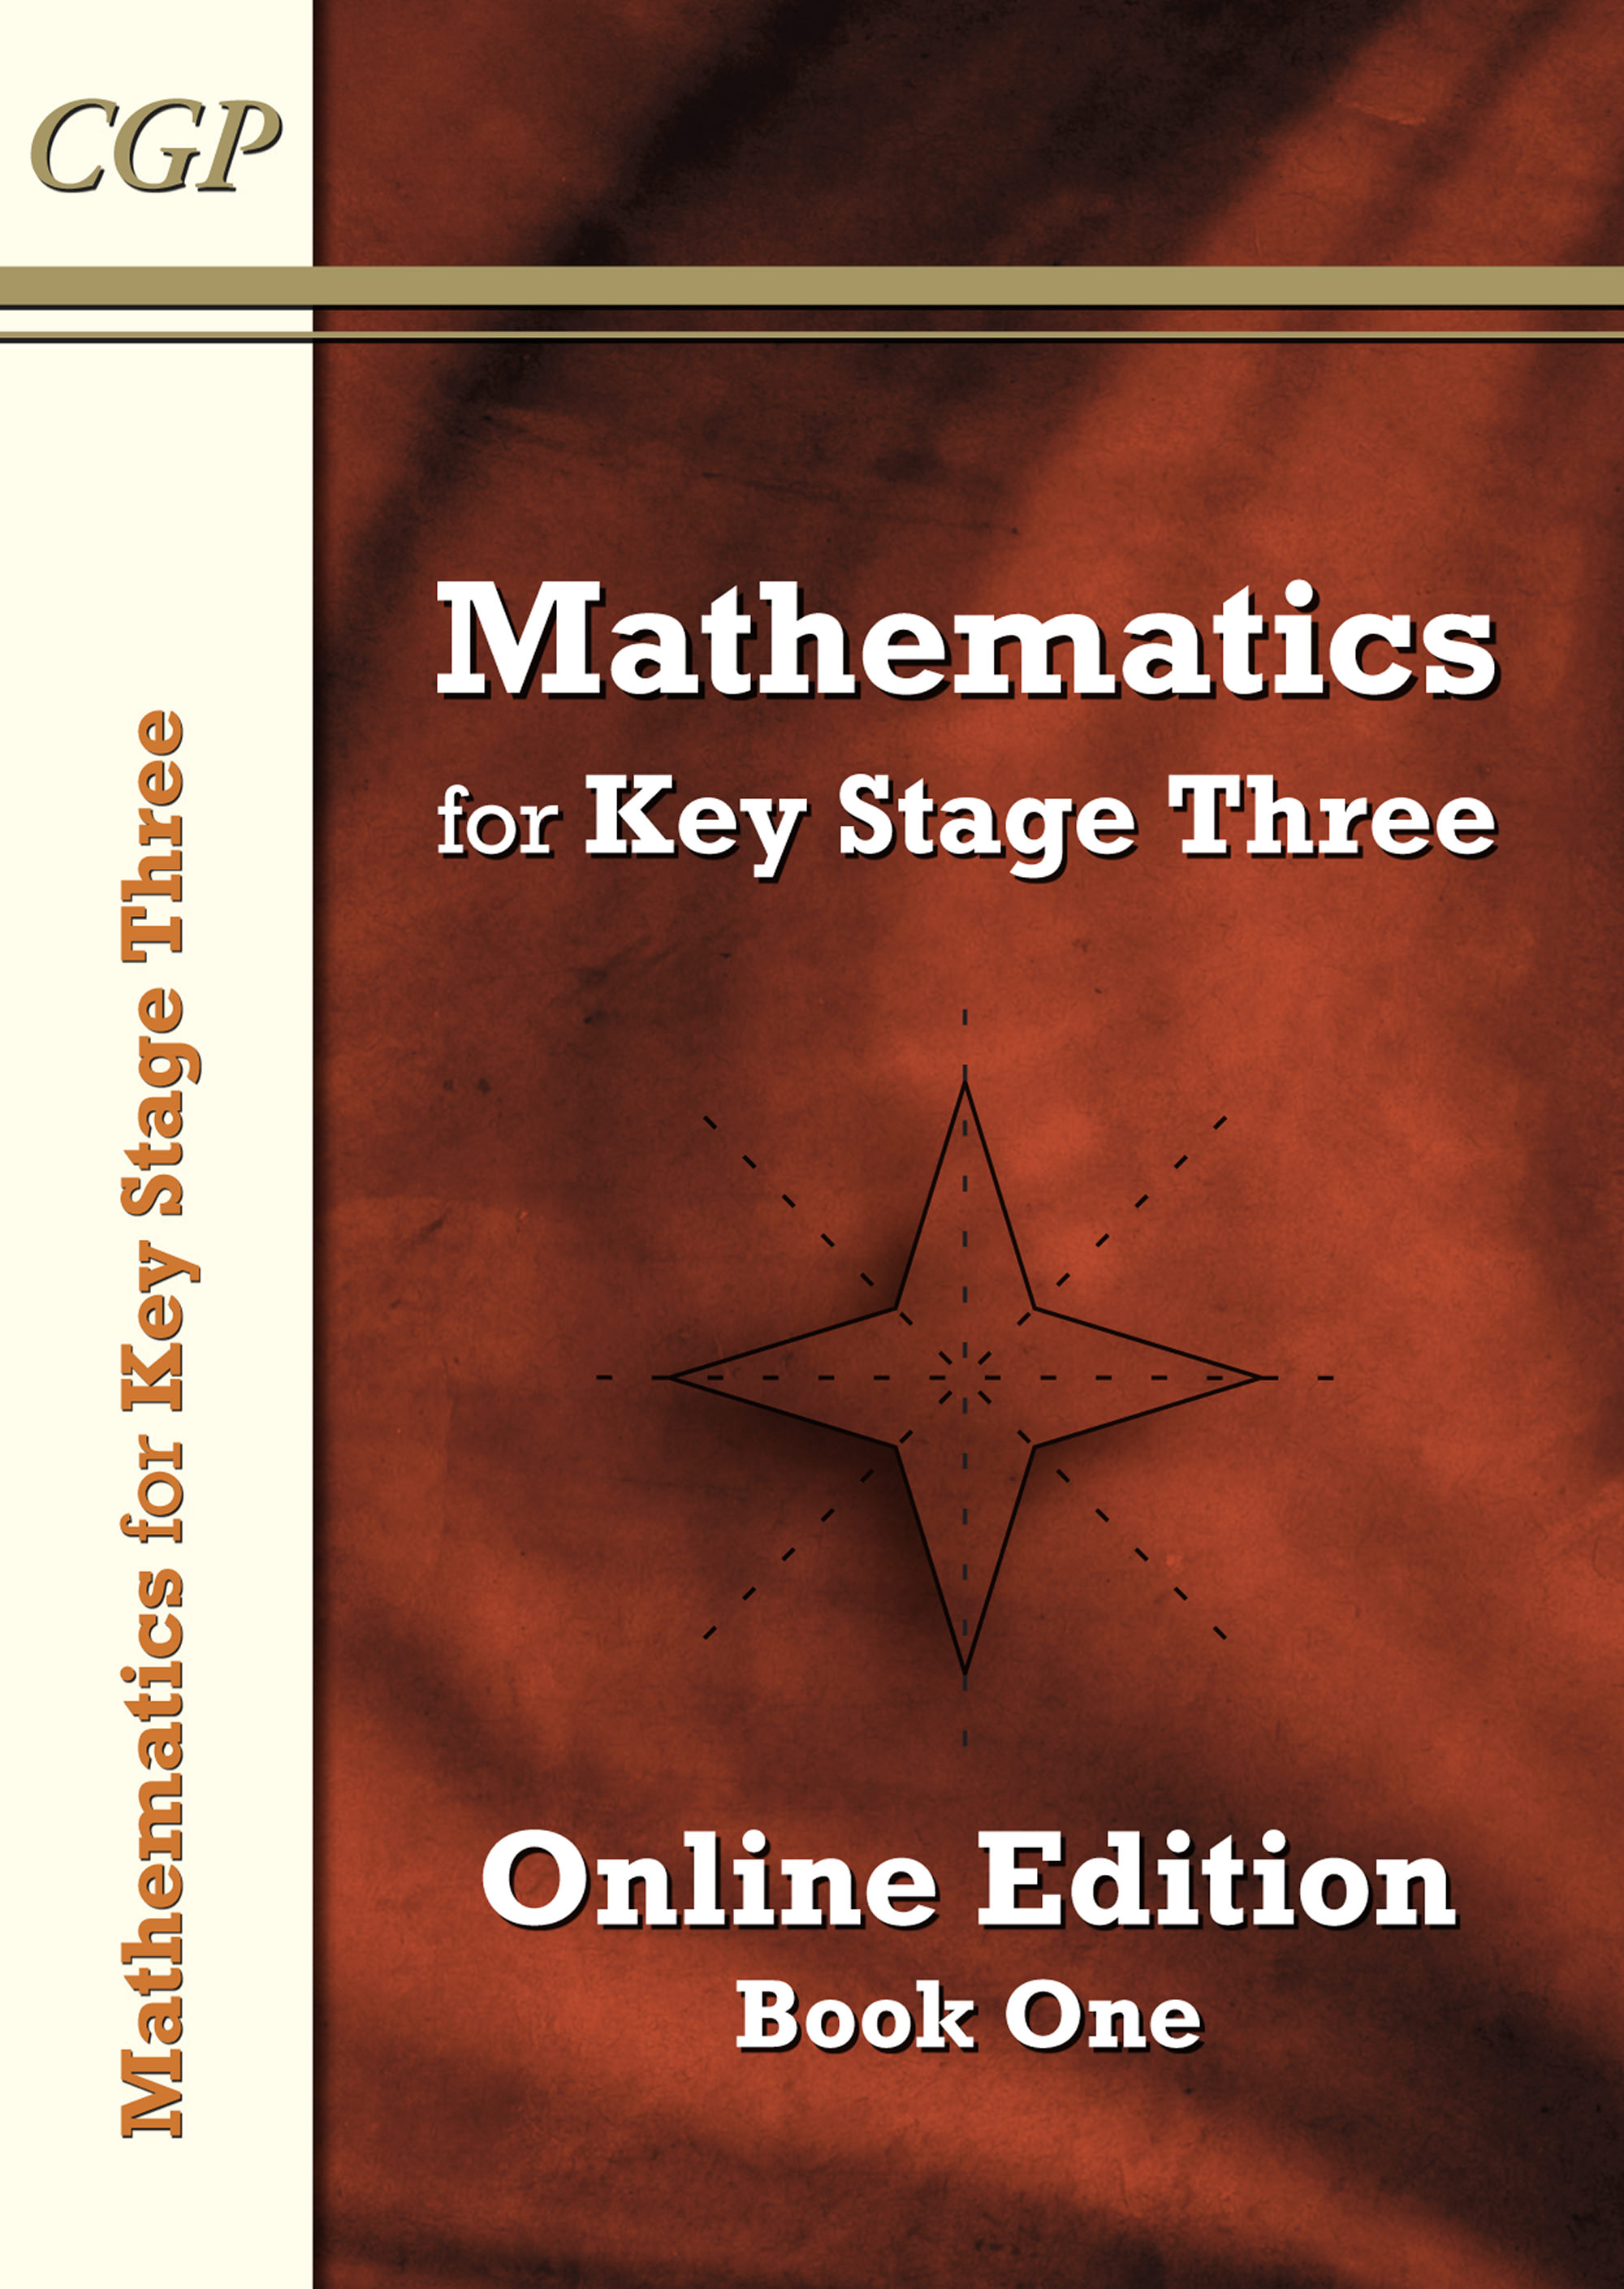 M1NN31G - KS3 Maths Textbook 1: Student Online Edition (without answers)